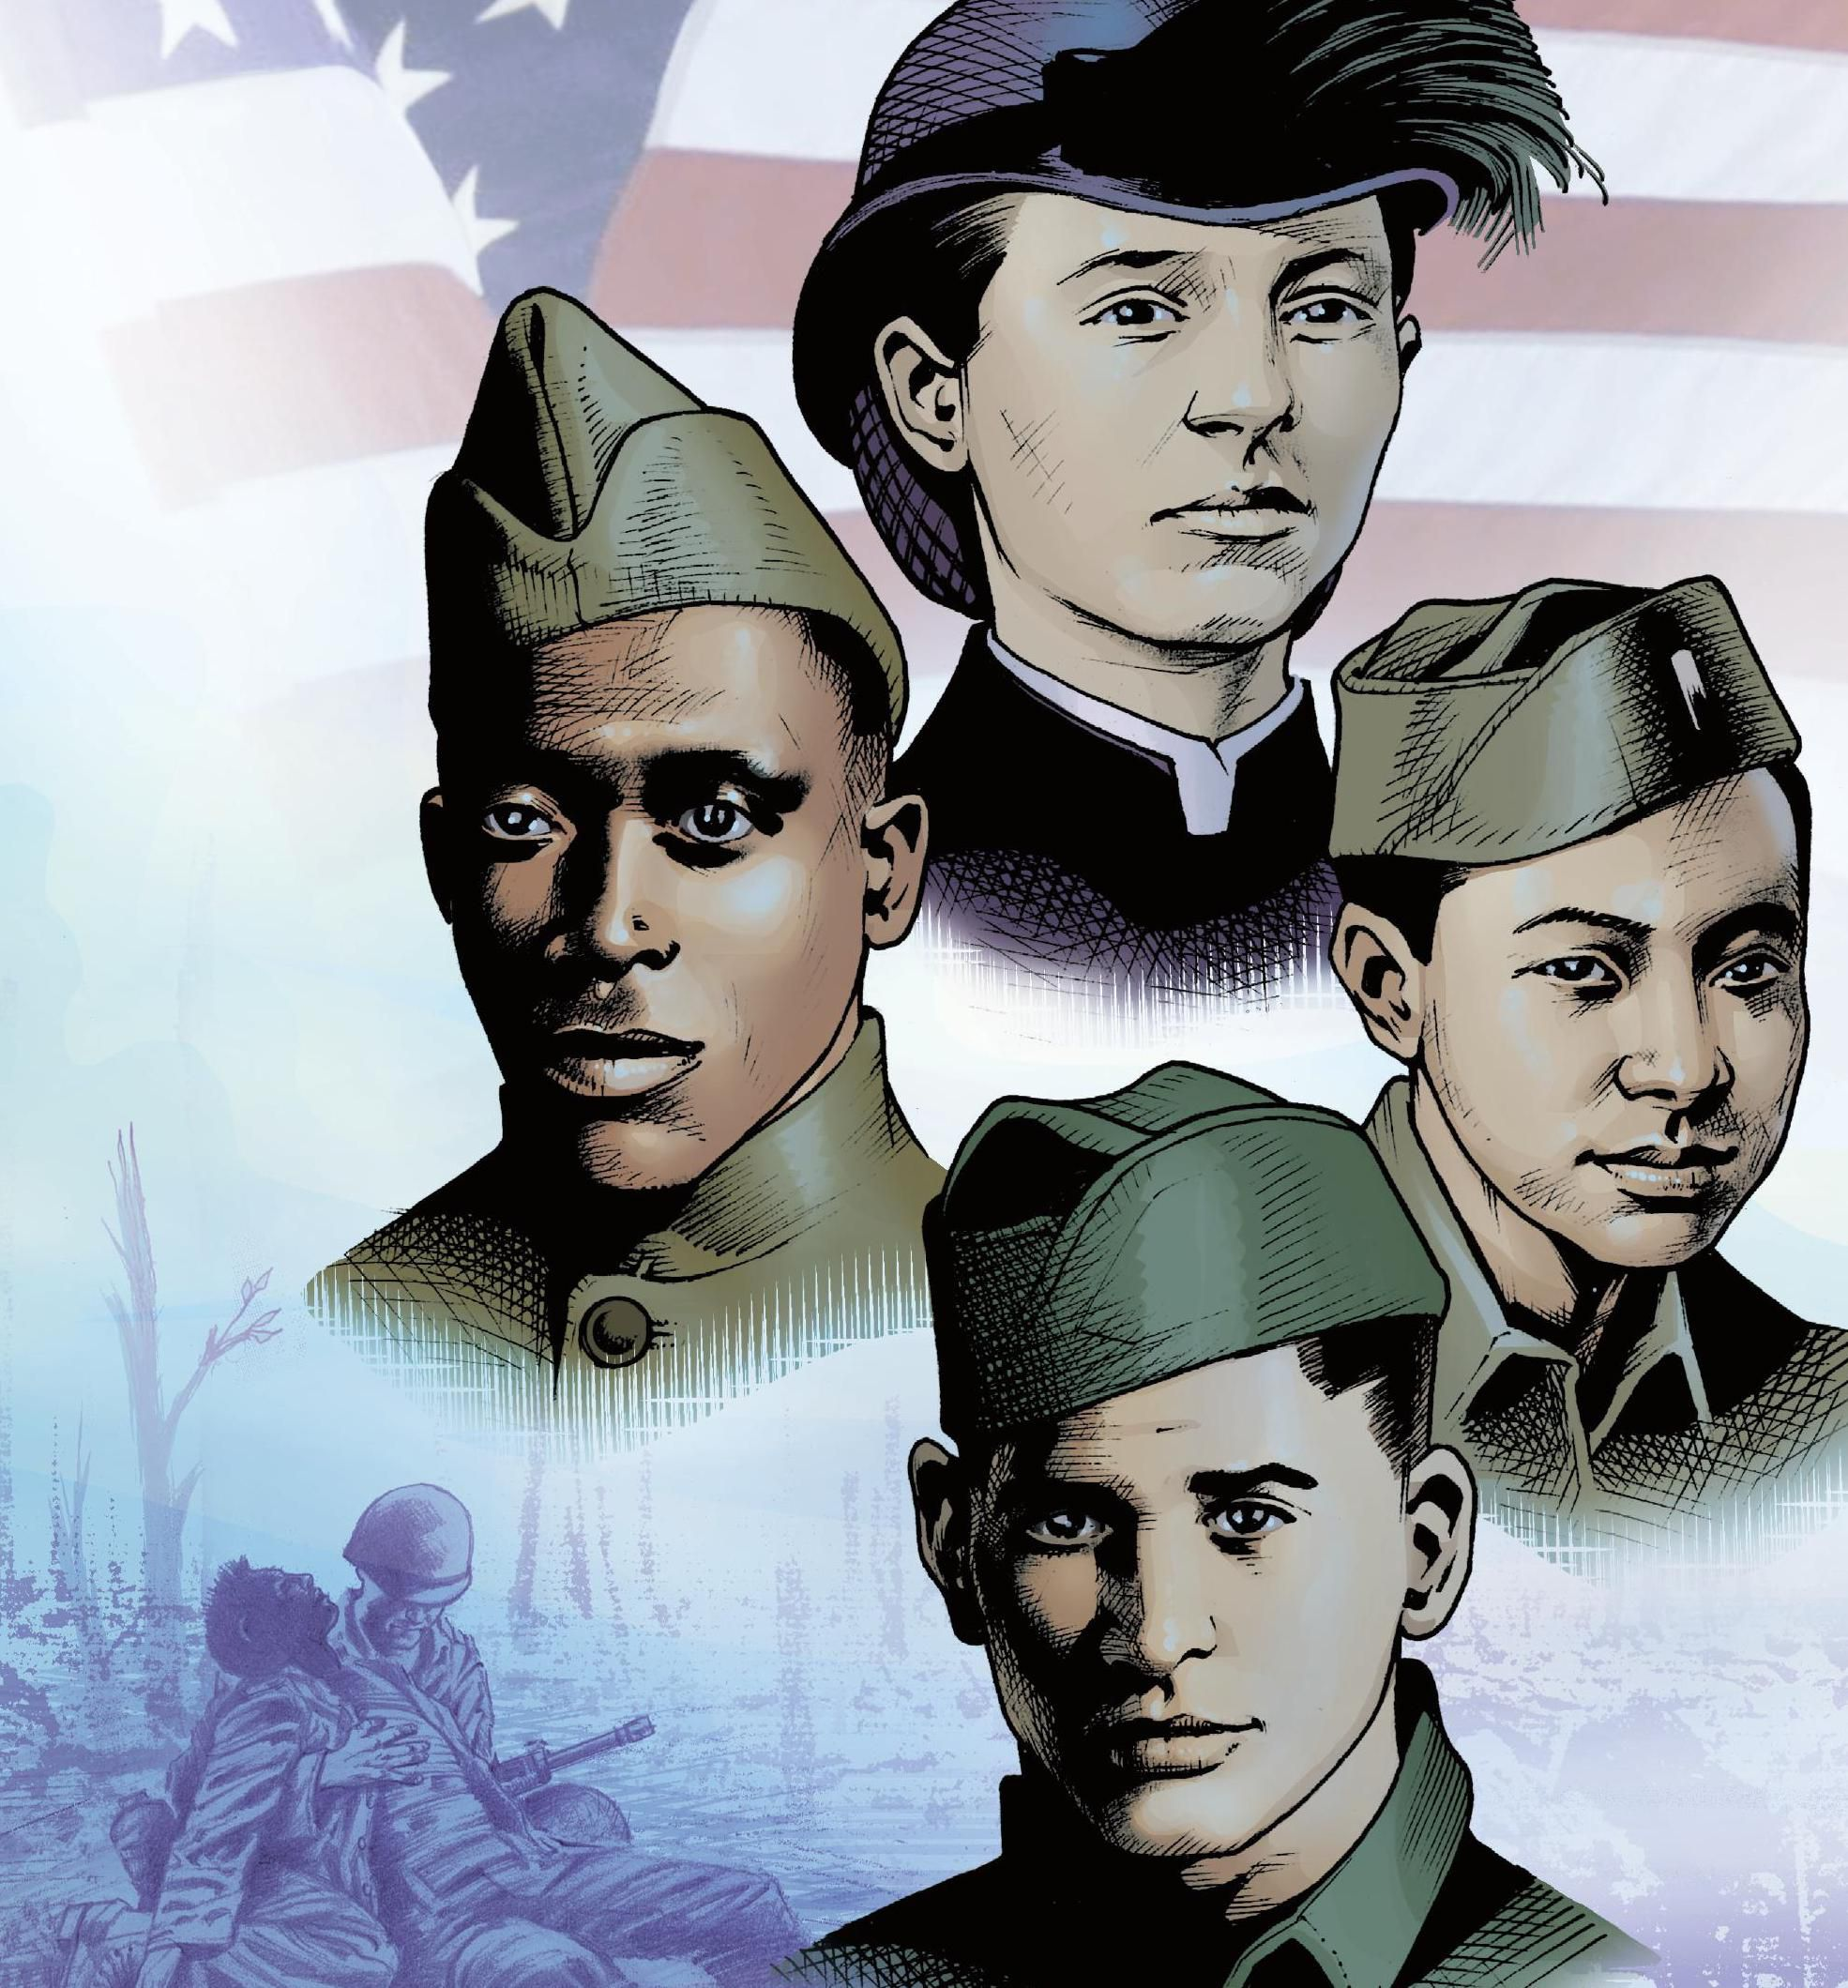 'Medal of Honor' illustrated series now available in paperback